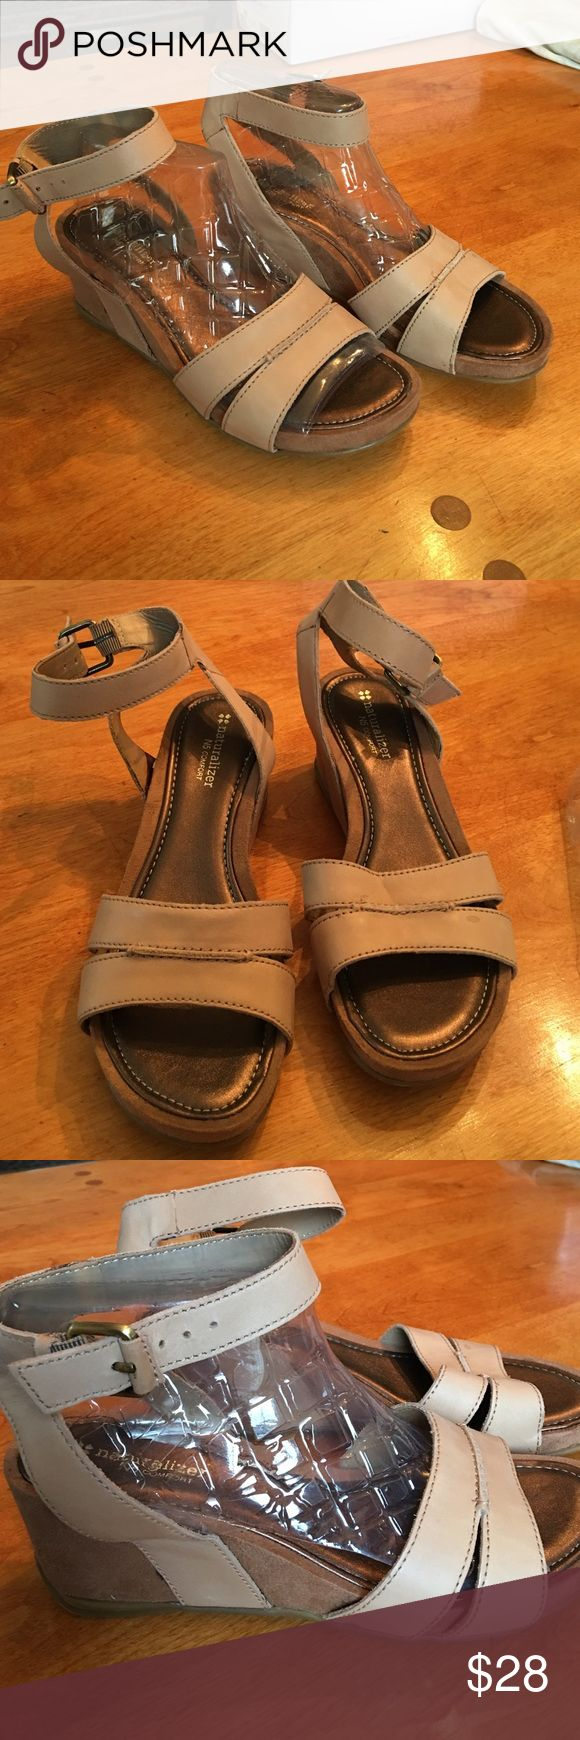 Naturalizer Wedge sandals Cute and comfortable Wedge sandals. Upper leather with suede wedges. Never worn! Naturalizer Shoes Sandals